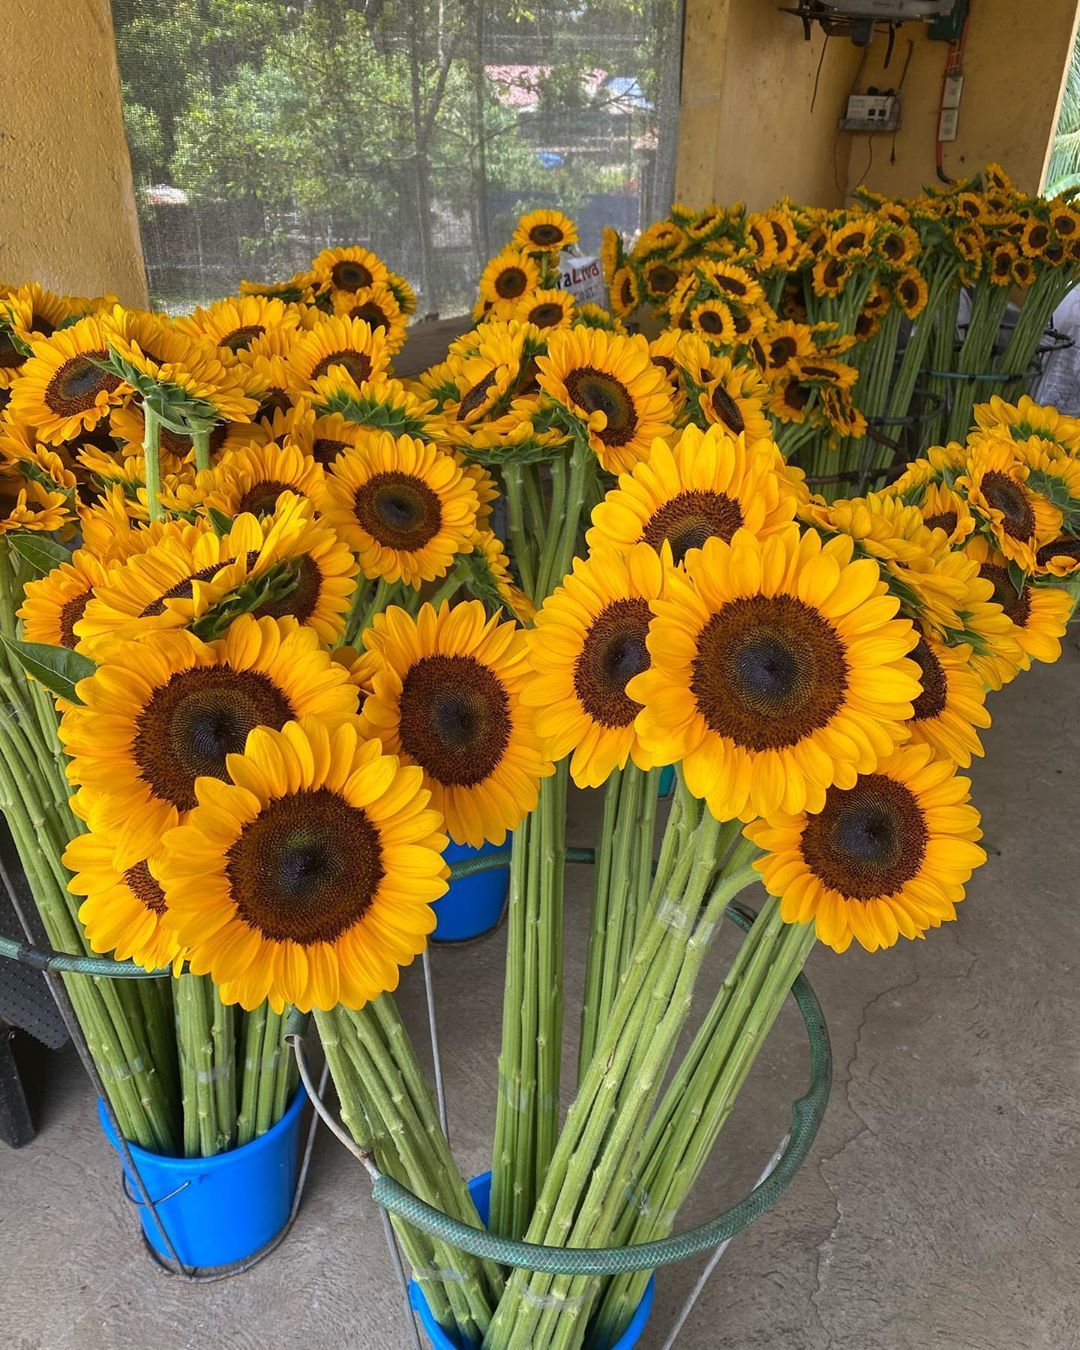 Rise And Shine Happy Faces Sunflowers Dm Me For Your Orders Flowers Flowershop Flowerstagram Flower Sunfl In 2020 Flower Quotes Flower Shop Sunflower